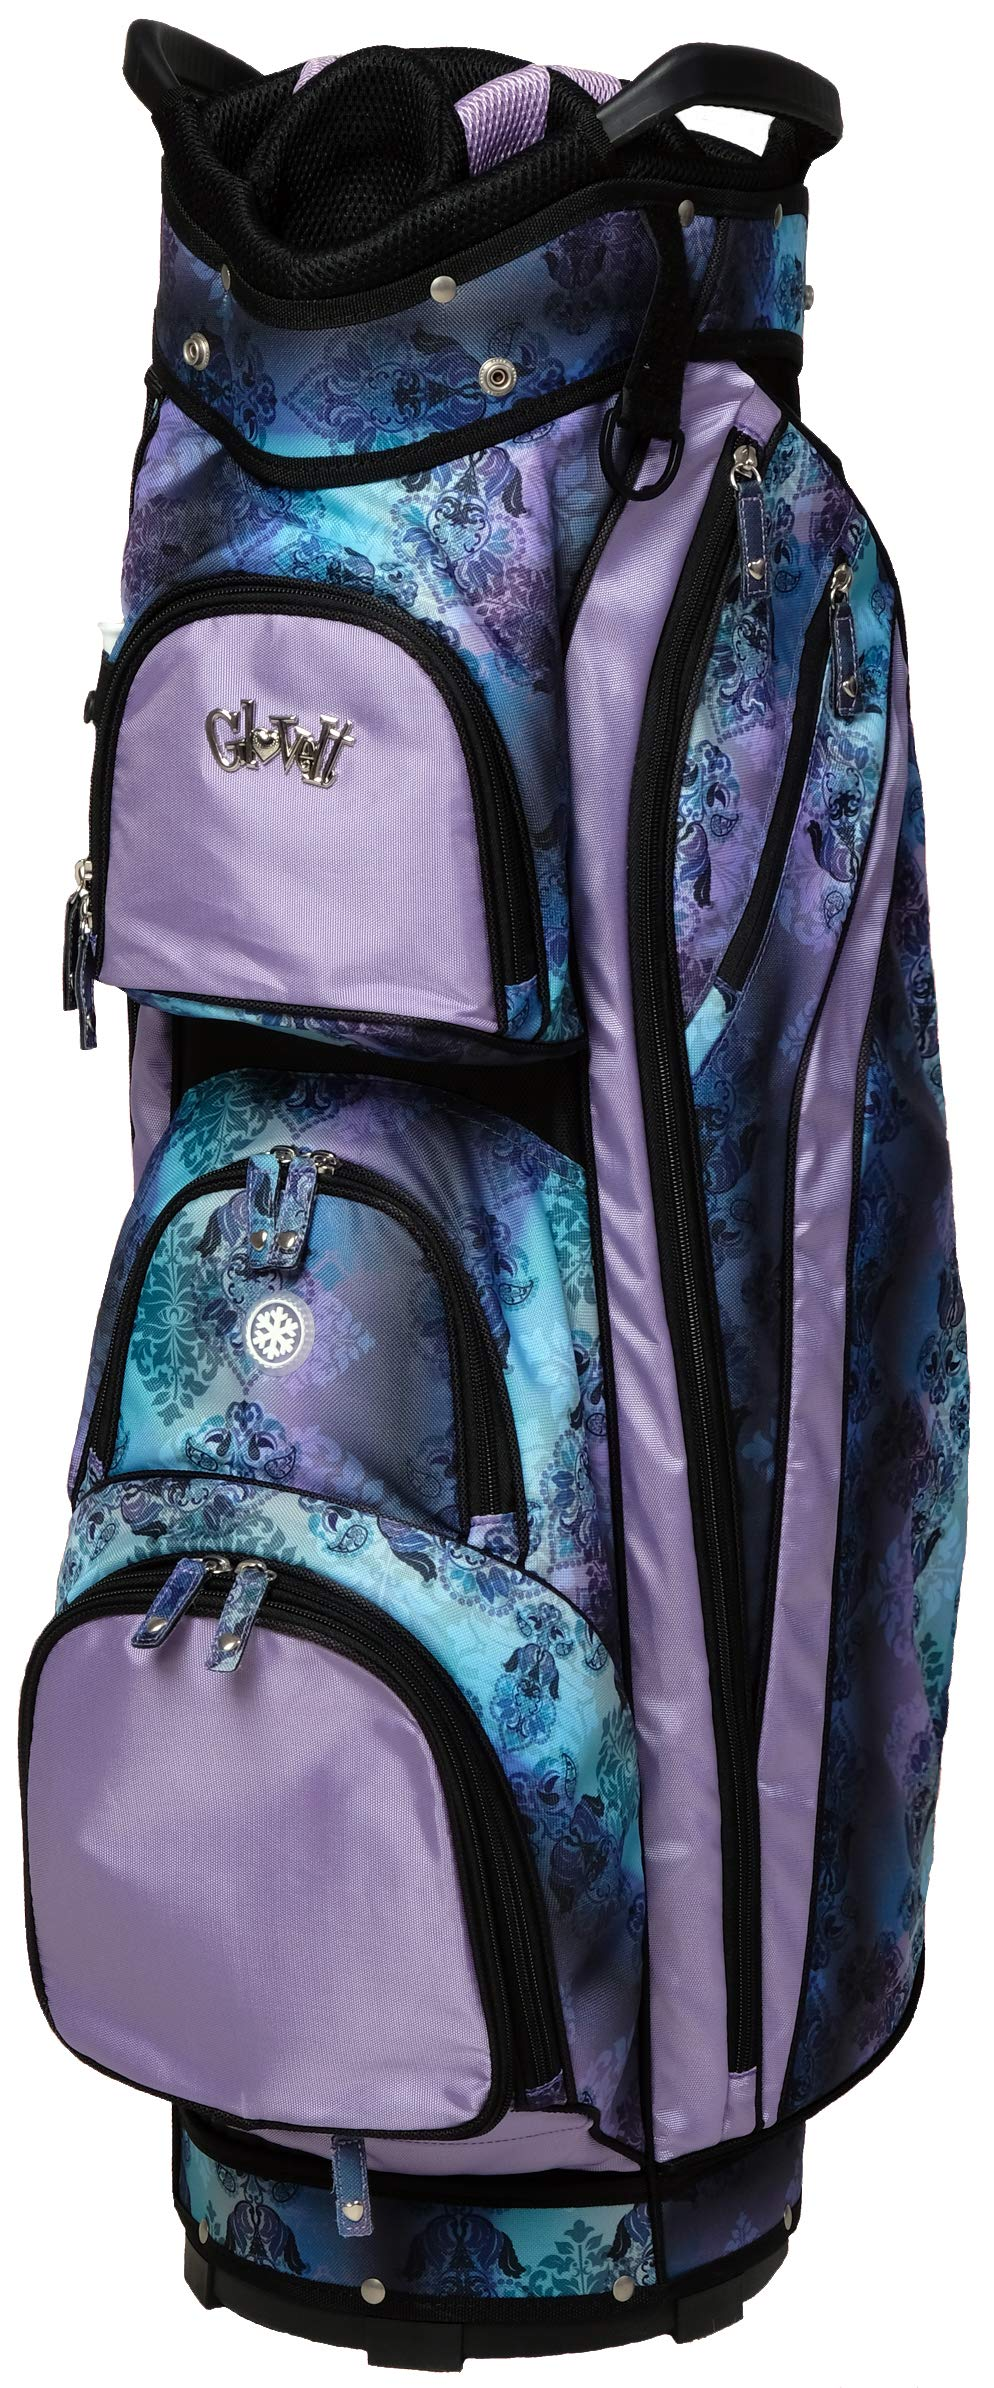 Glove It Women's Golf Bag Ladies 14 Way Golf Carry Bag - Golf Cart Bags for Women - Womens Lightweight Golf Travel Case - Easy Lift Handle - 2019 Lilac Paisley